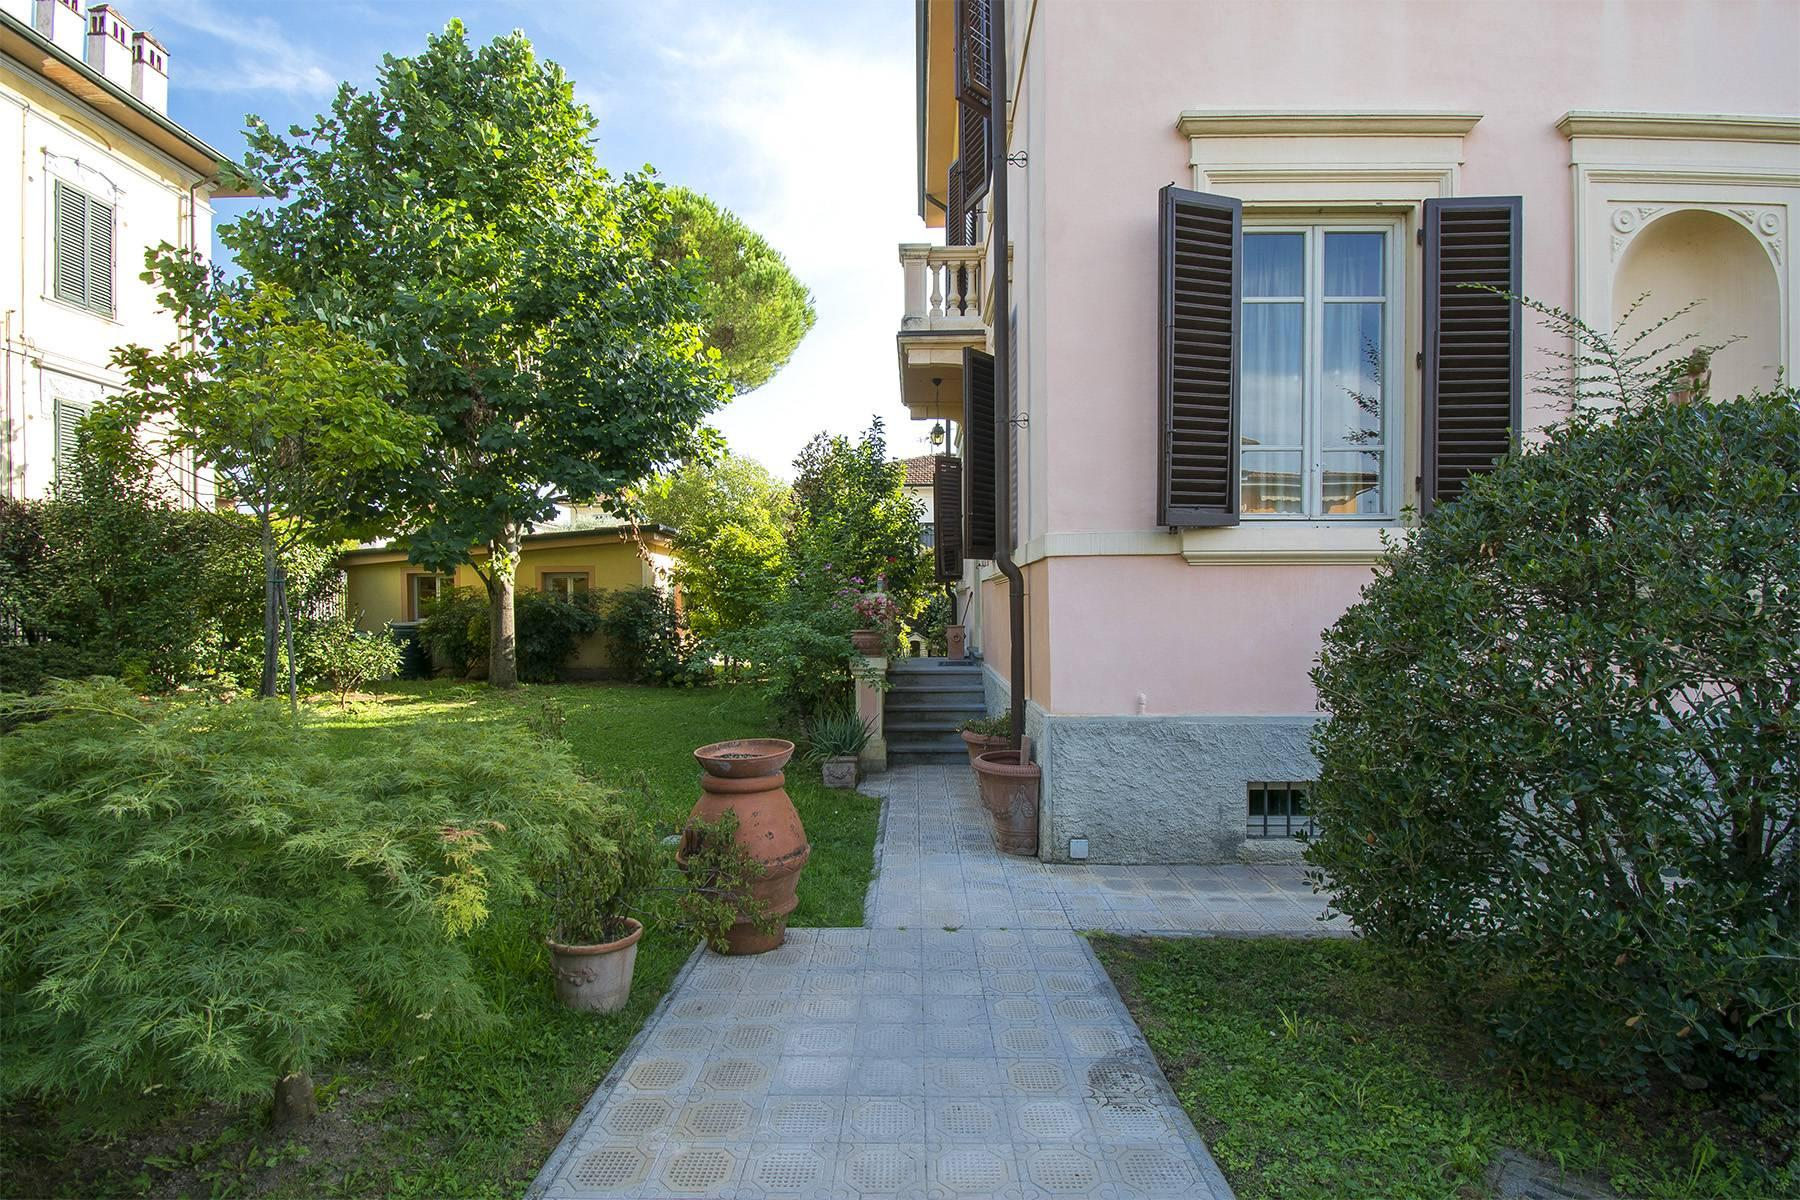 Art Nouveau Villa for sale in Lucca - 18